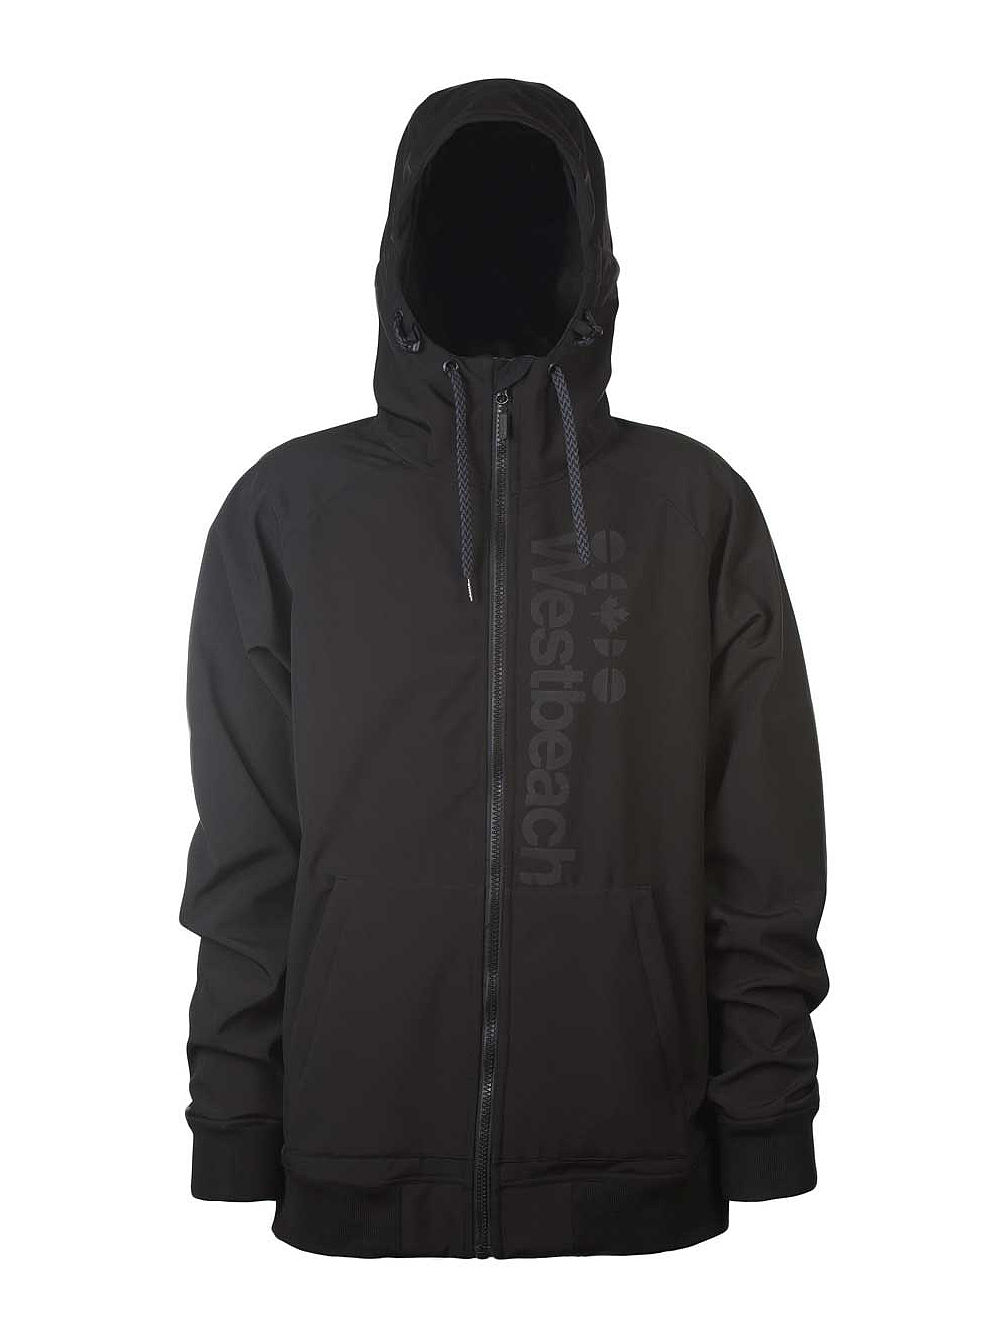 Chief Softshell Jacket